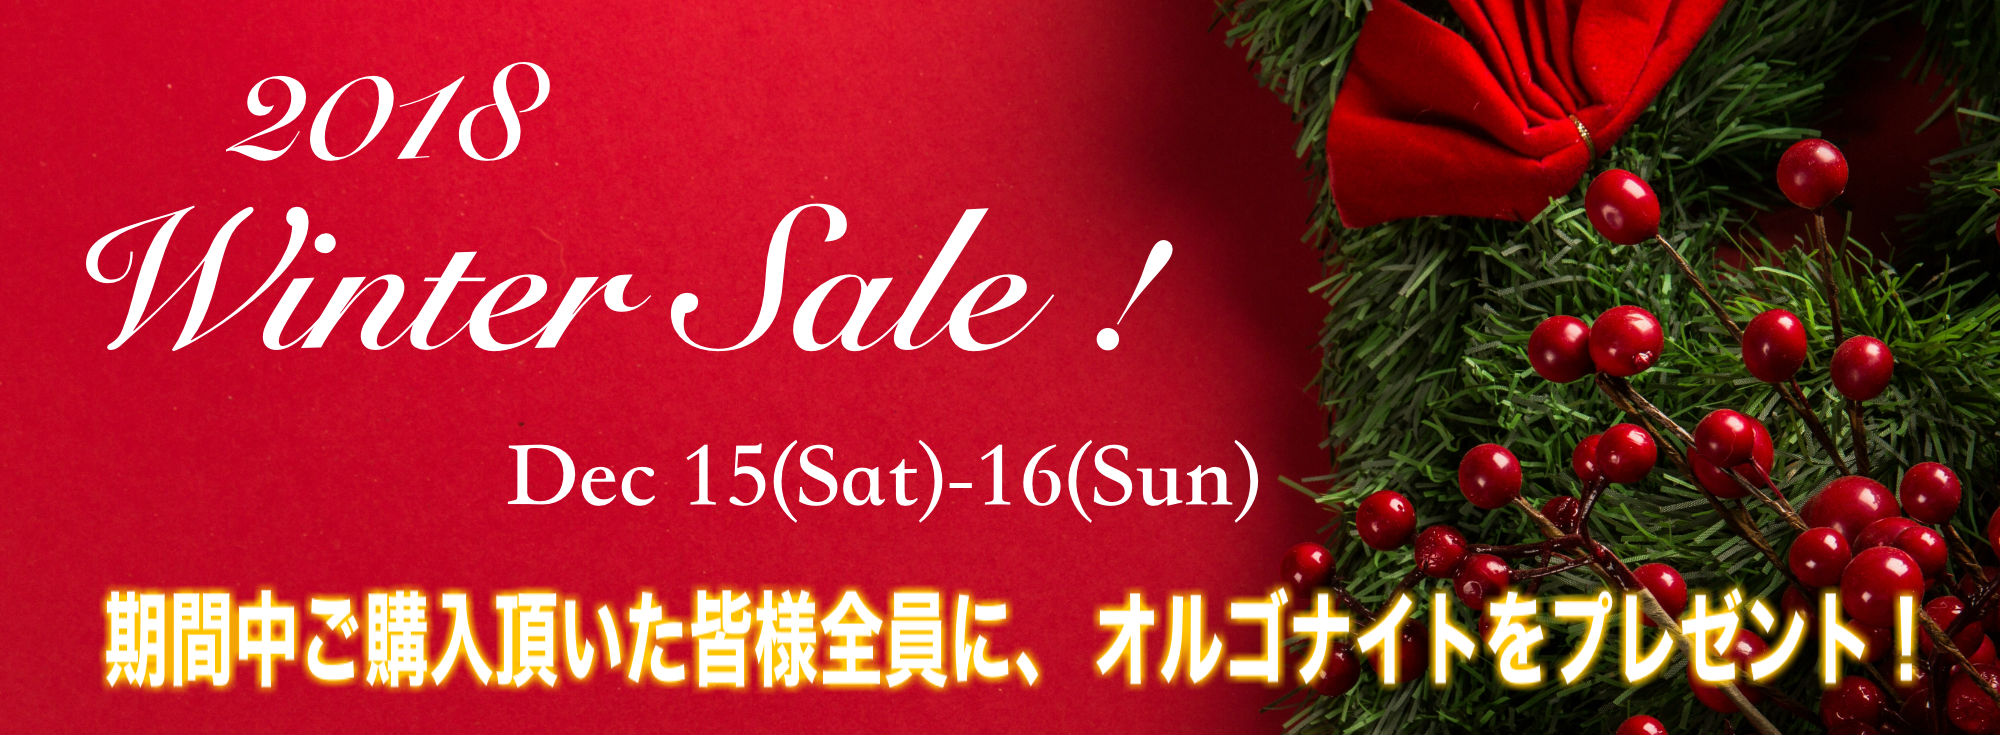 2018 WINTER SALE開催!